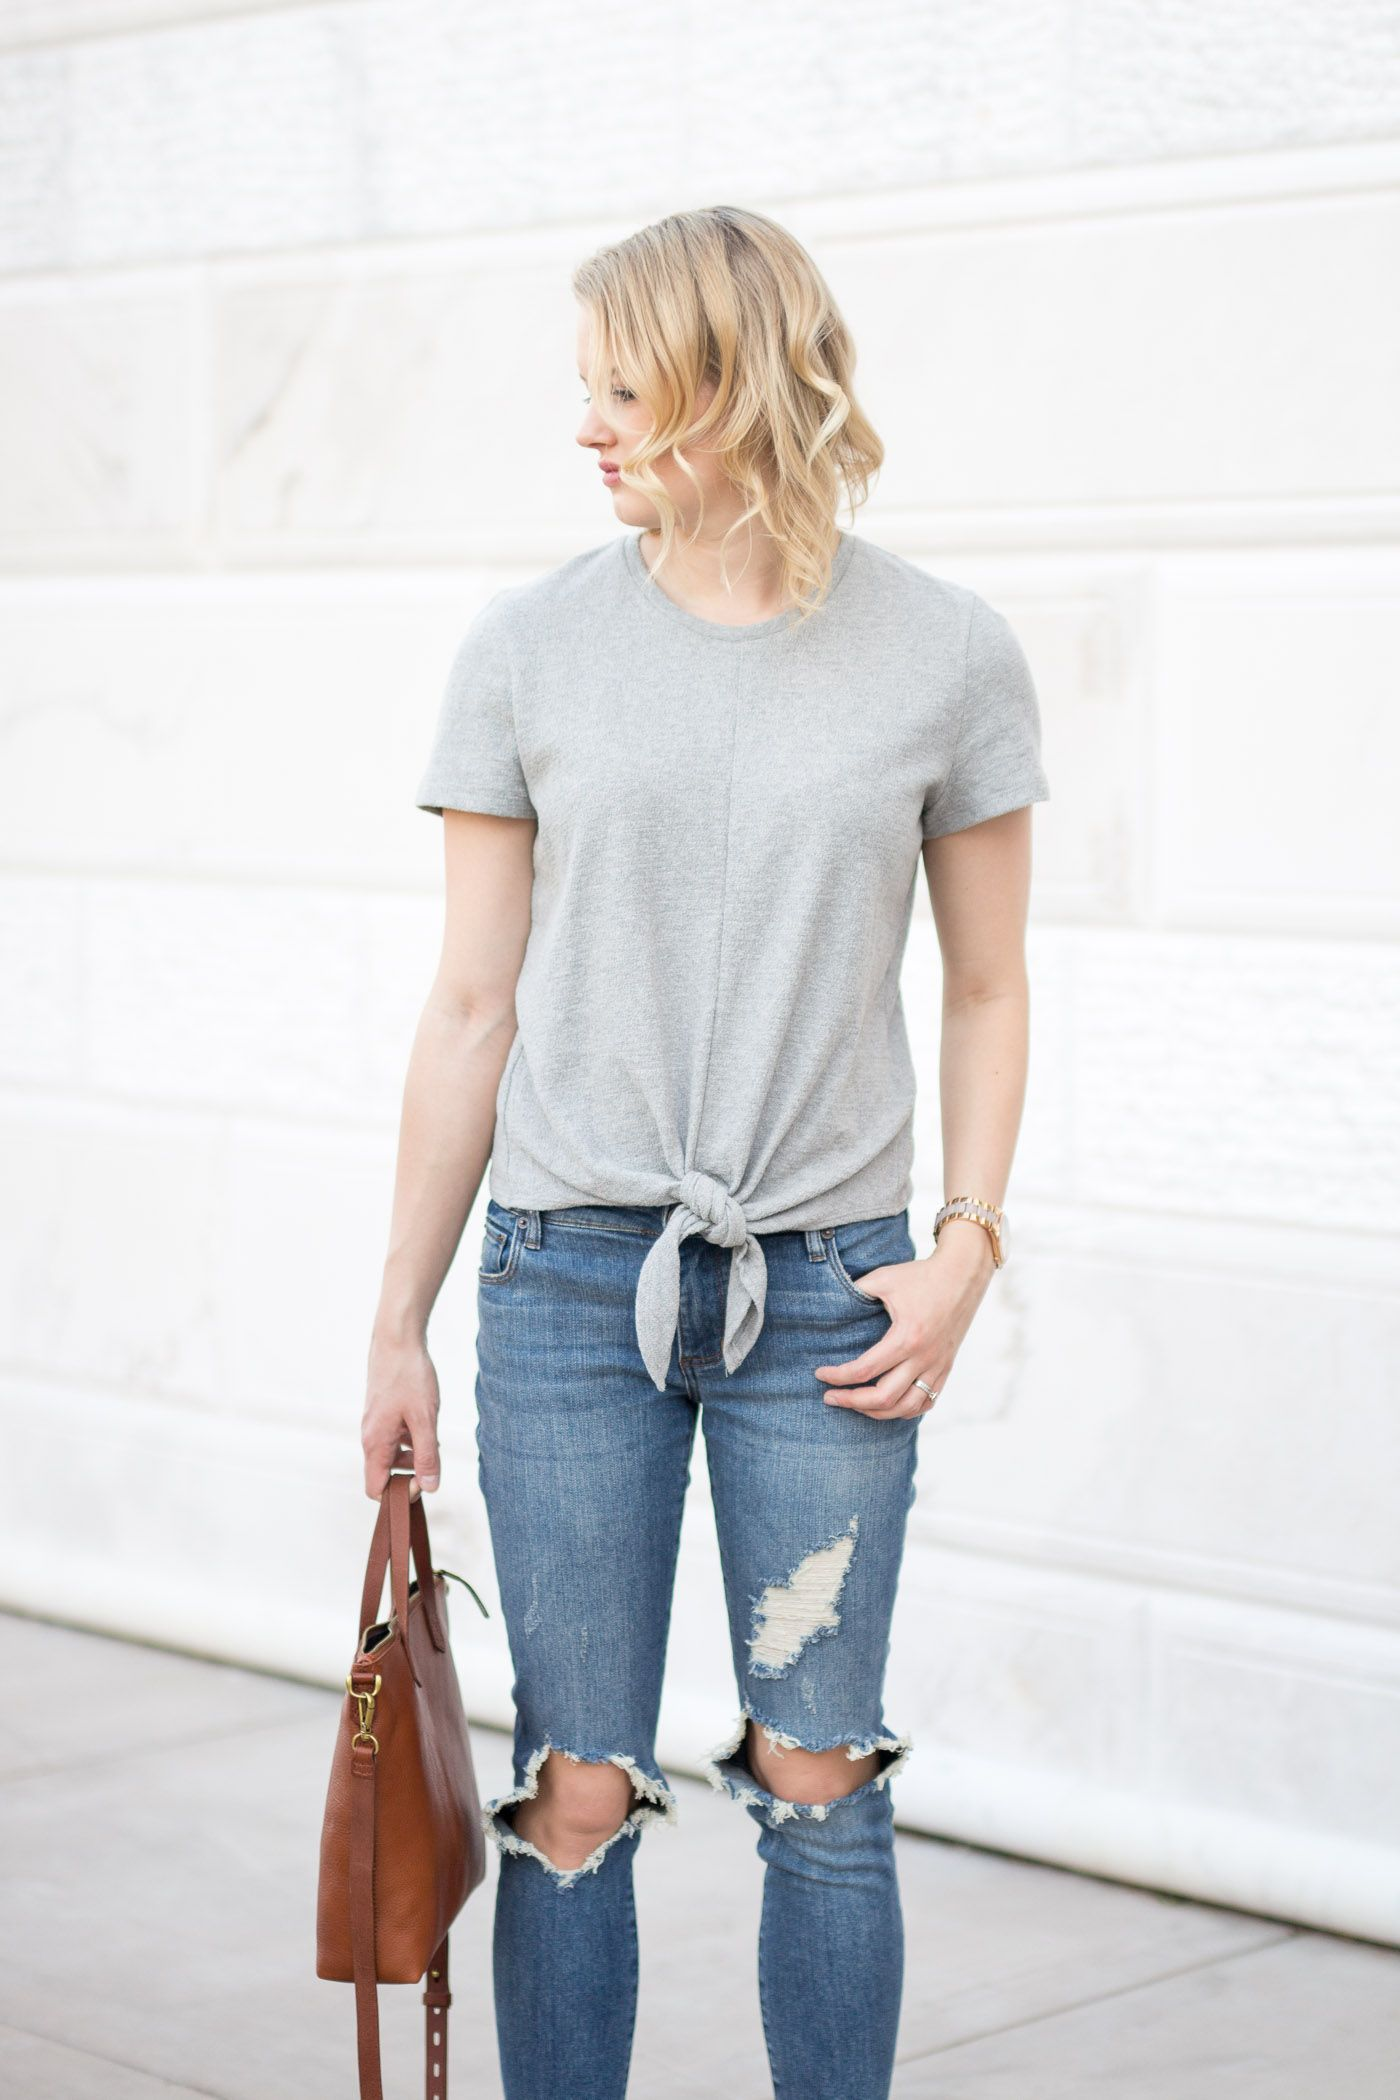 92eeeb34aece7 How To Style A Tie-Front Top, Madewell, spring outfit idea, fashion blog,  Treats and Trends